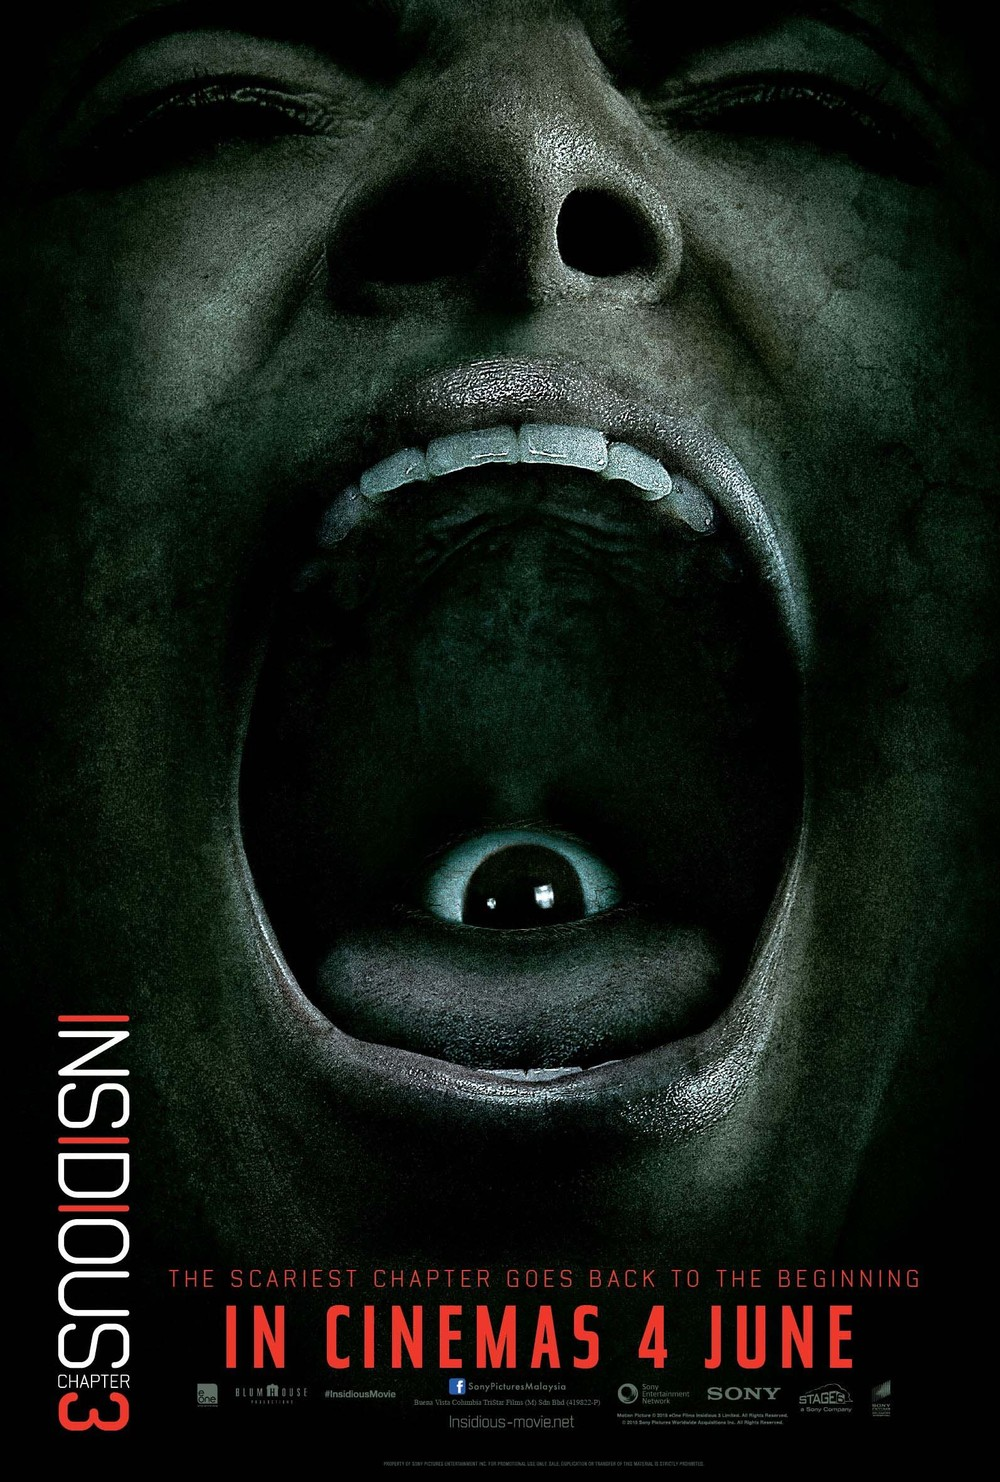 insidious chapter 3 release date Insidious Chapter 3 & Tarsems ...